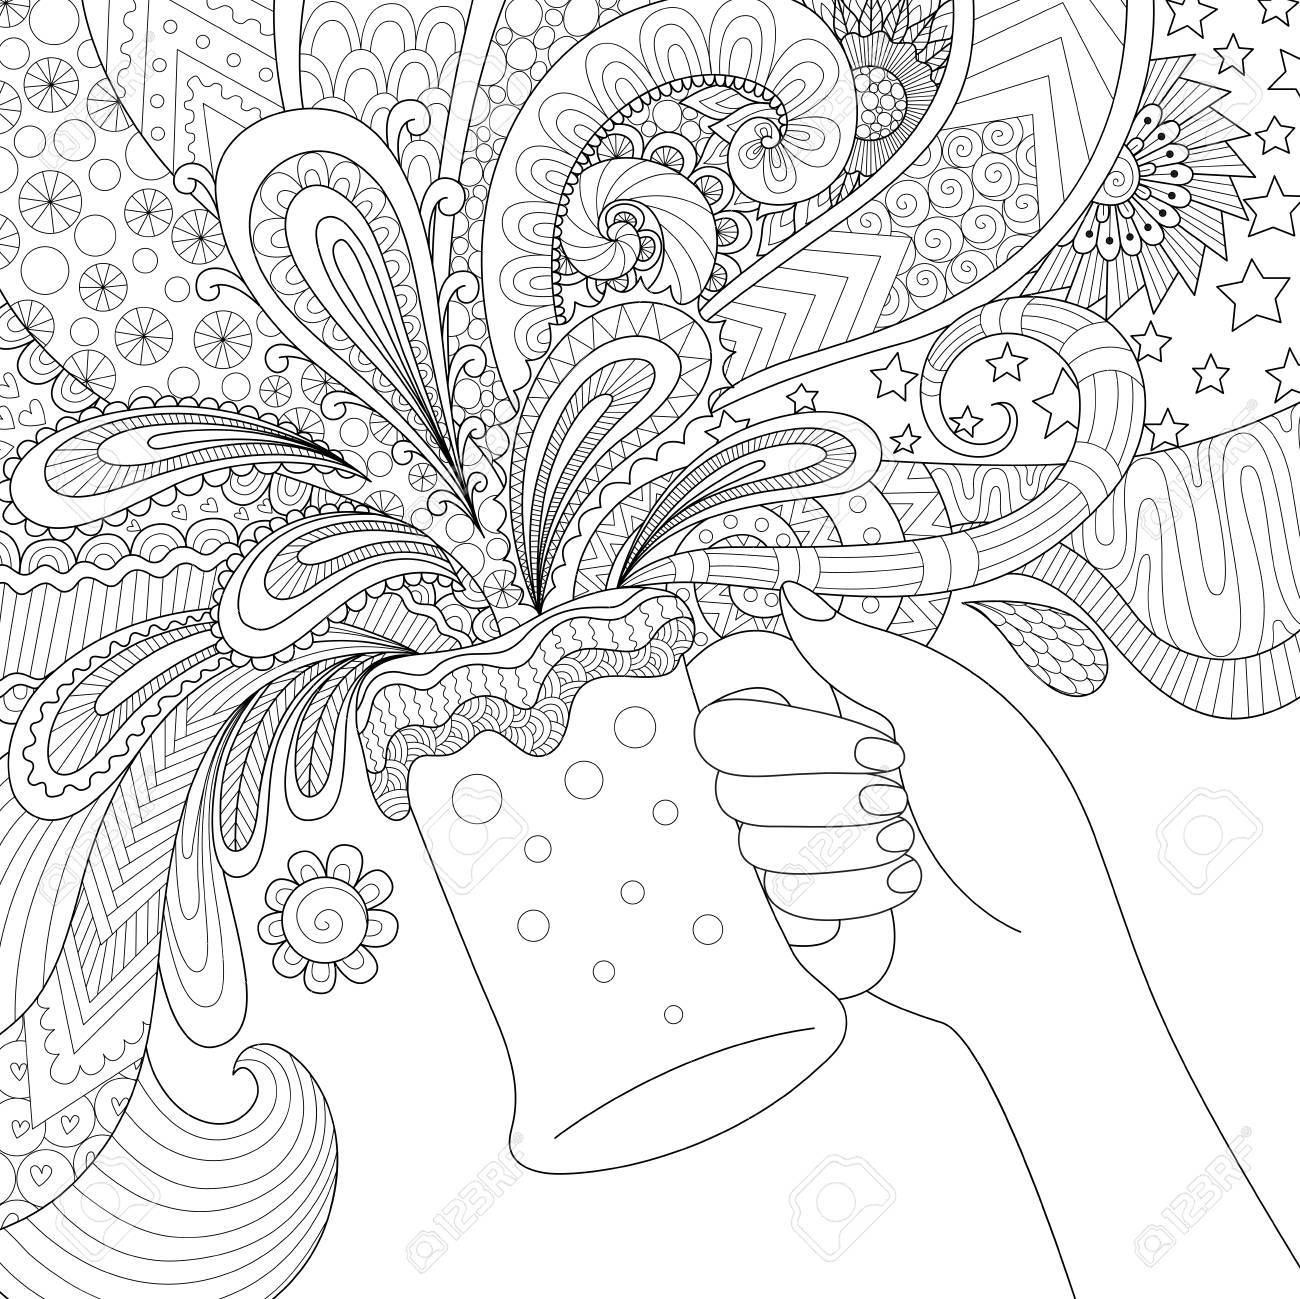 Zendoodle Design Of Hand Holding A Glass Beer For Adult Coloring